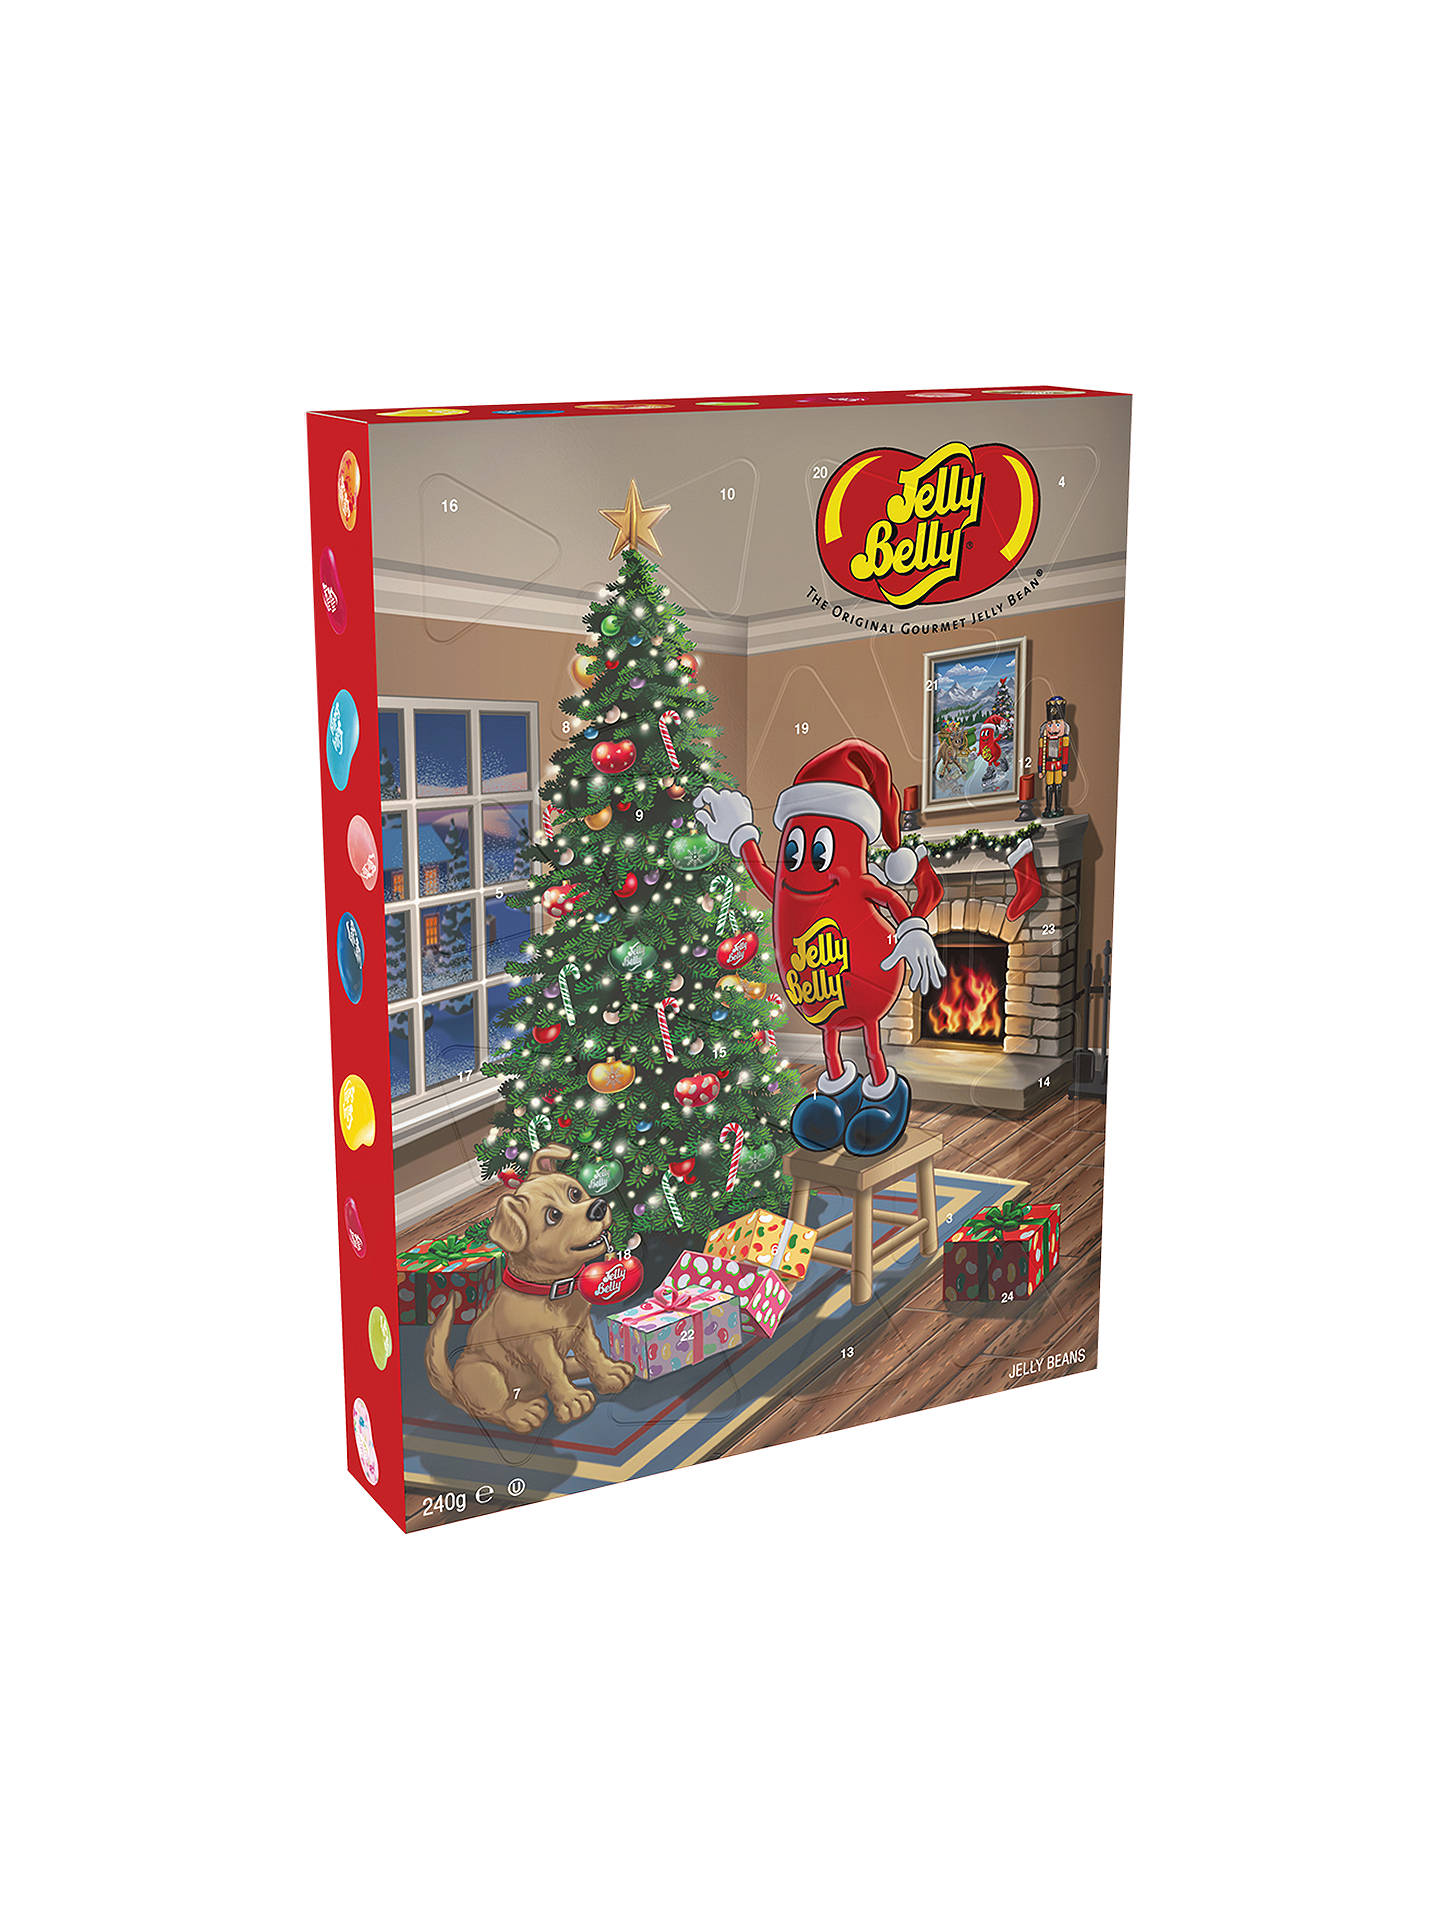 BuyJelly Belly Advent Calendar, 440g Online at johnlewis.com